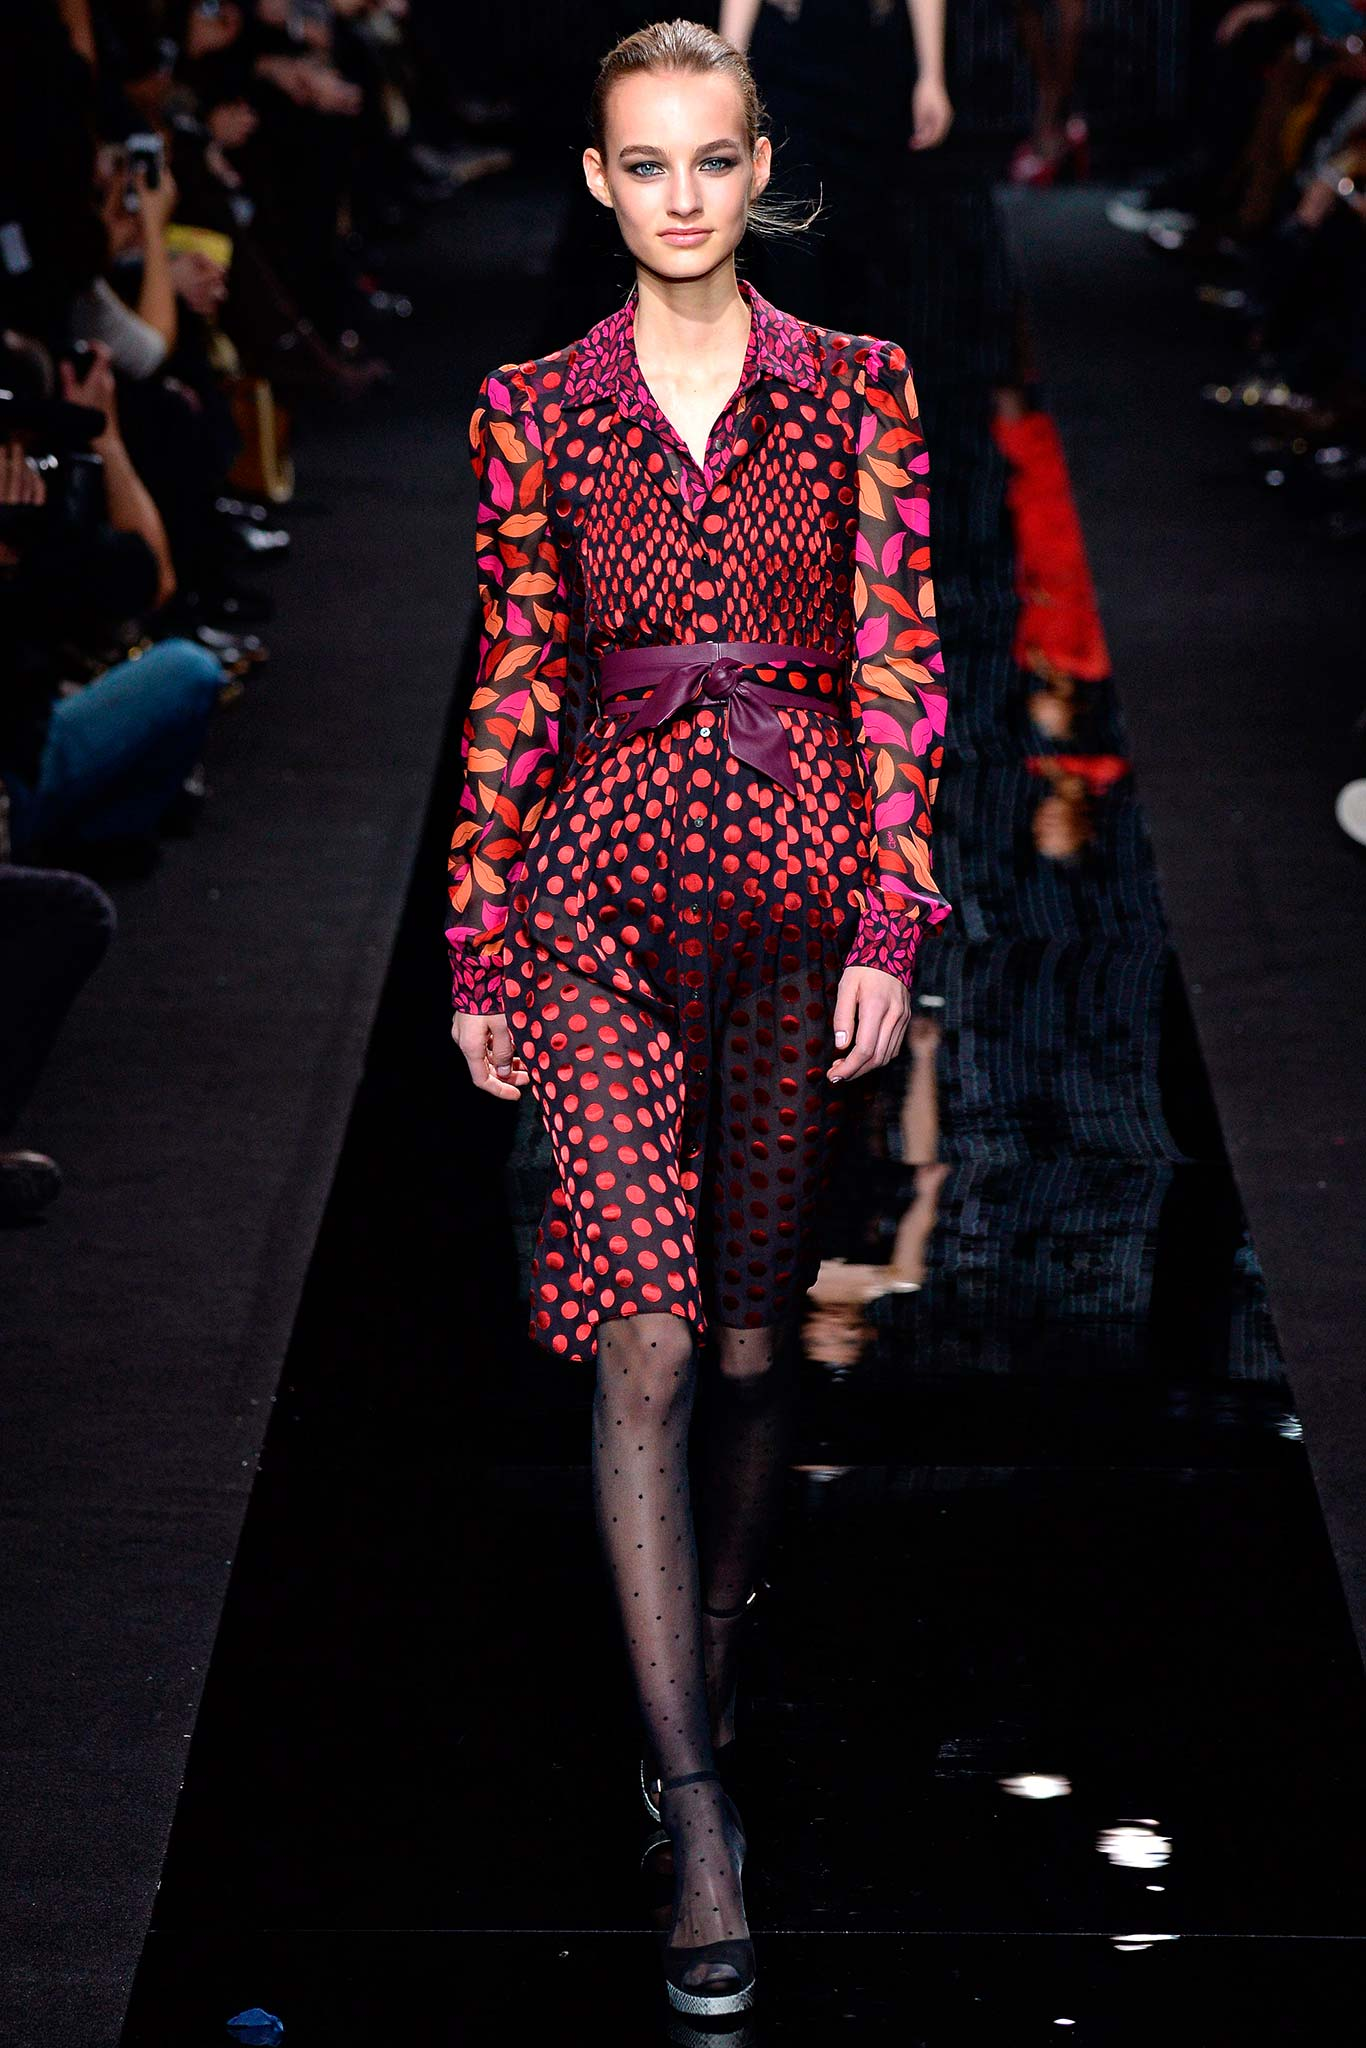 DVF Long Sleeve Wrap Dress Fall 2015